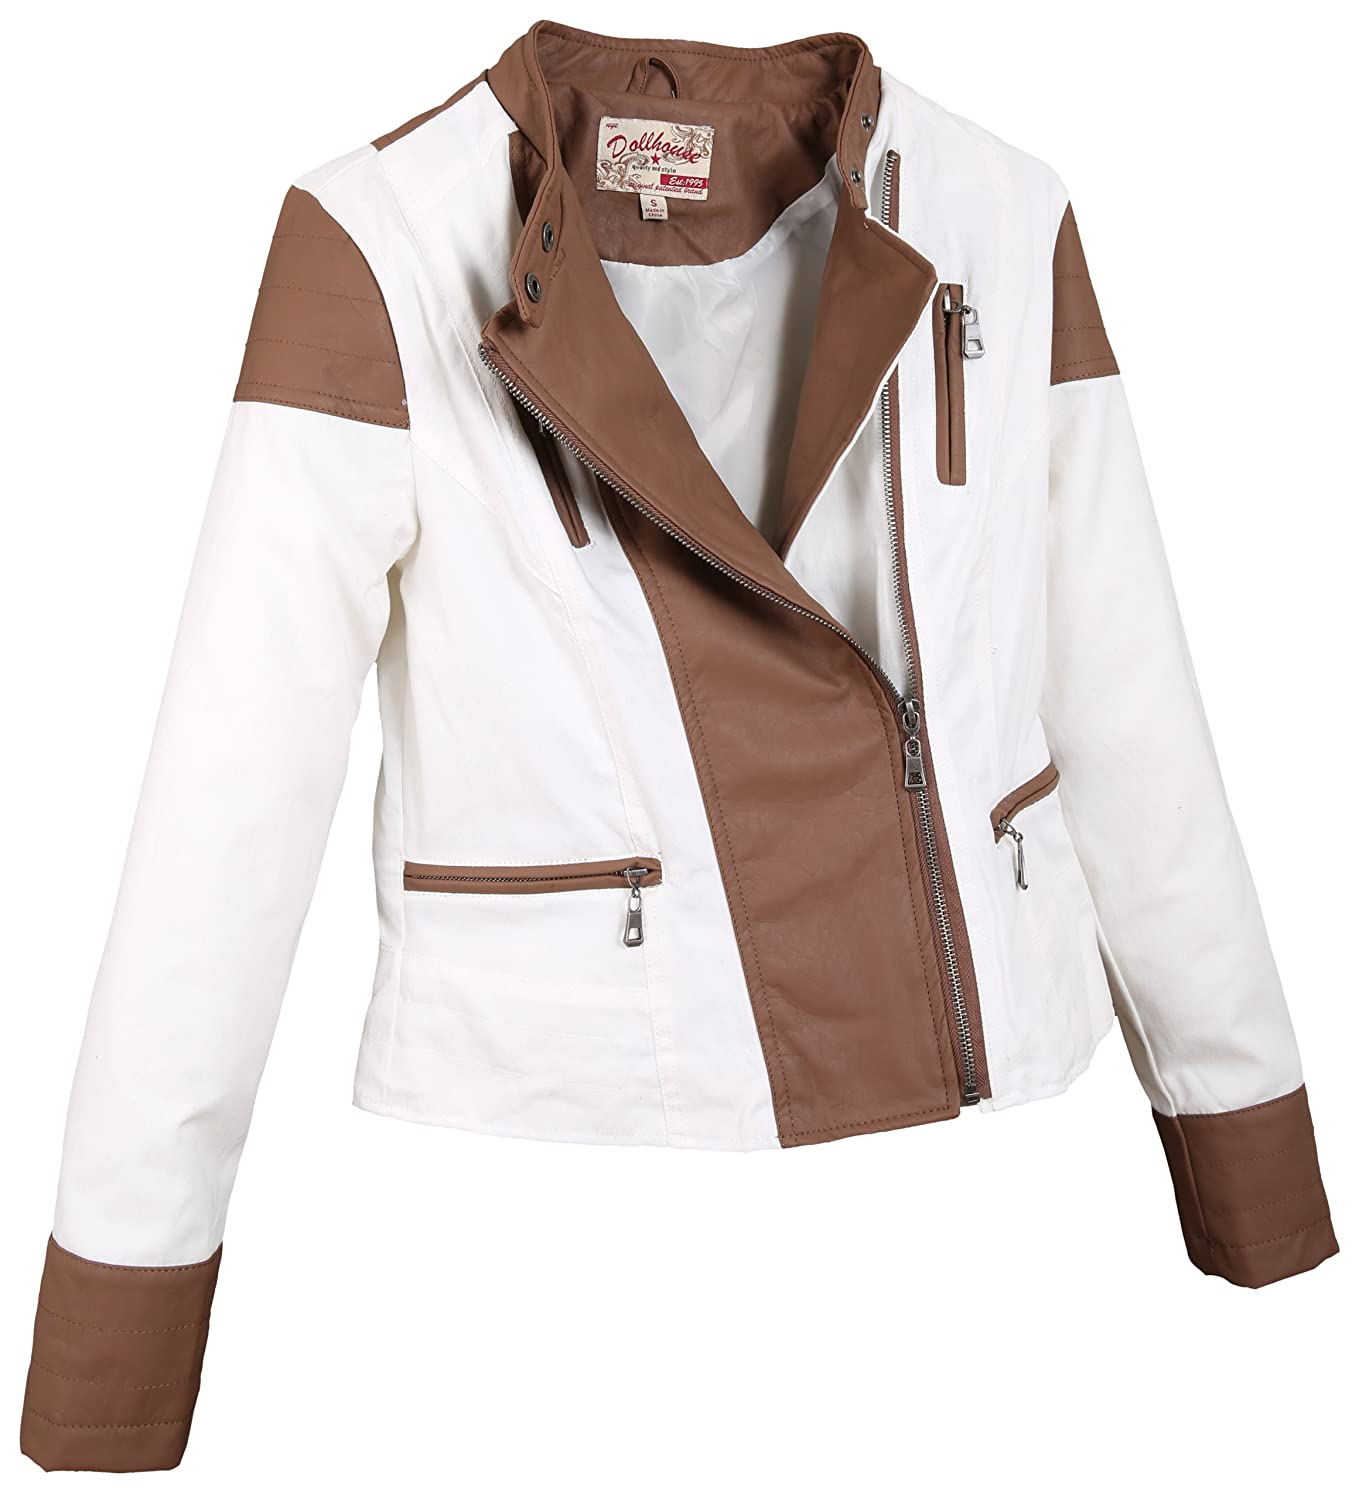 Dollhouse Junior'S Full Zip Leather Trimmed Jacket With Buttoned Mock Neck - Bright White (Small)